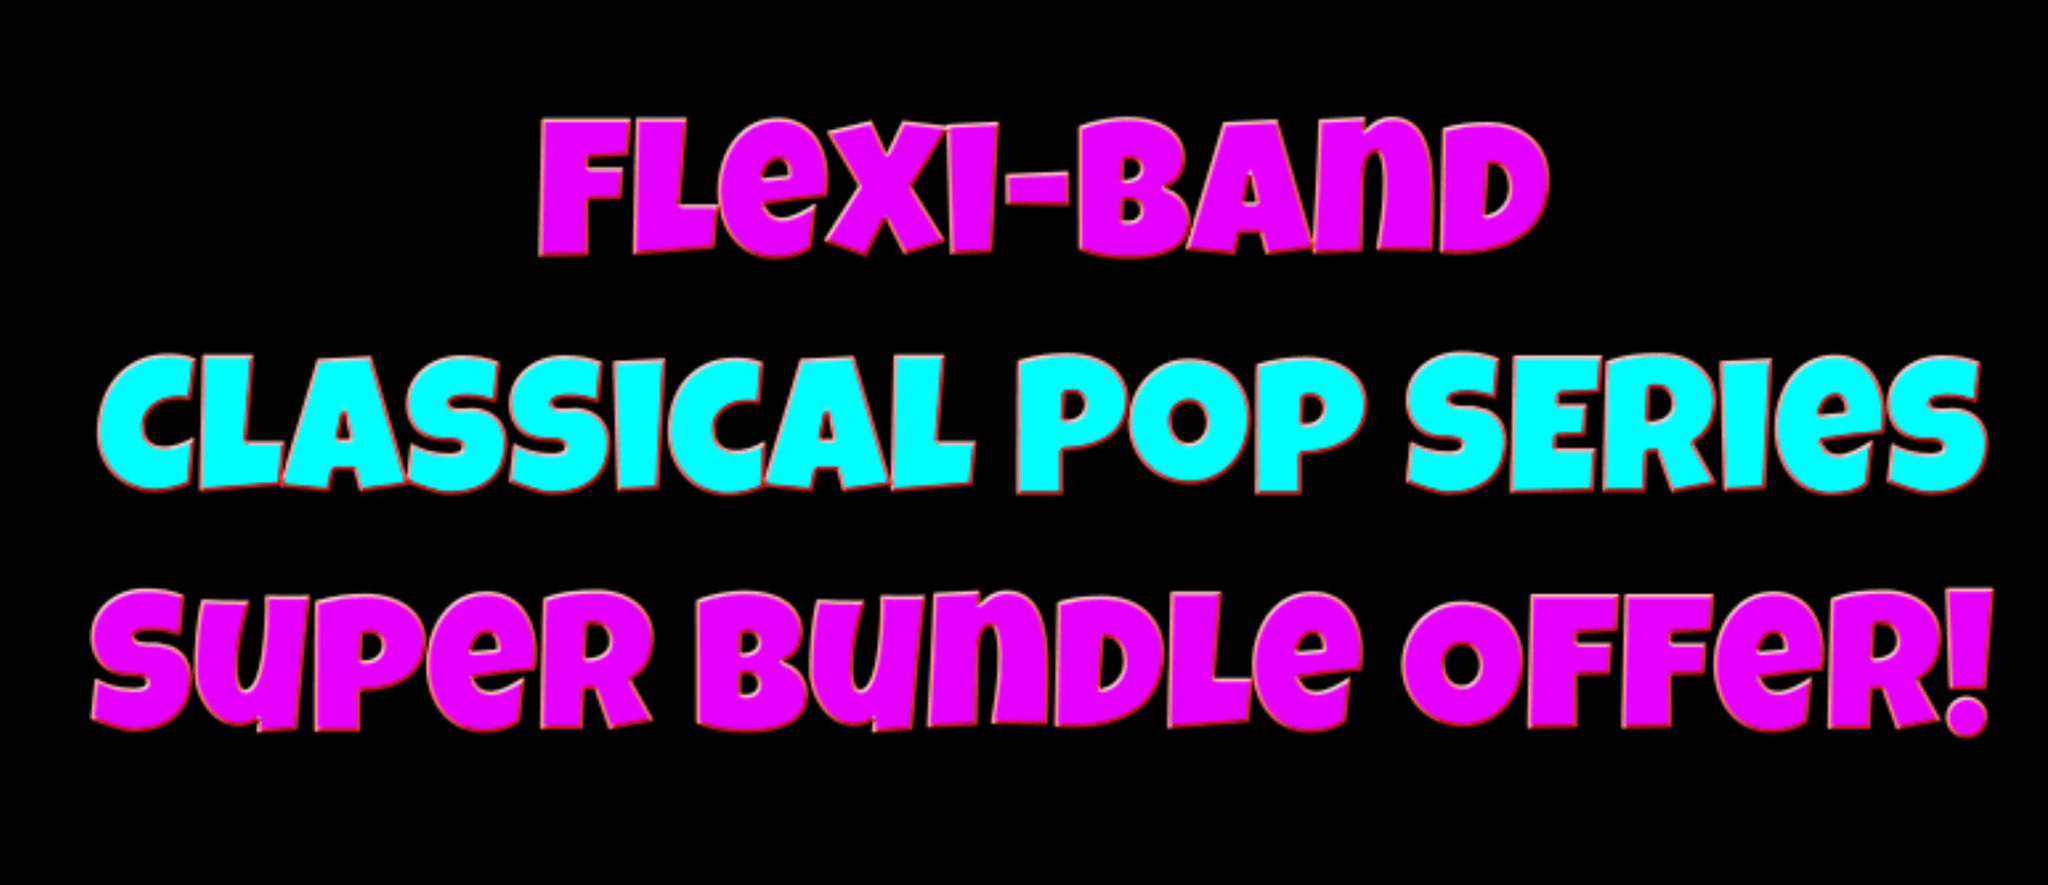 Flexi-Band Classical Pop Series Special Offer Bundle!